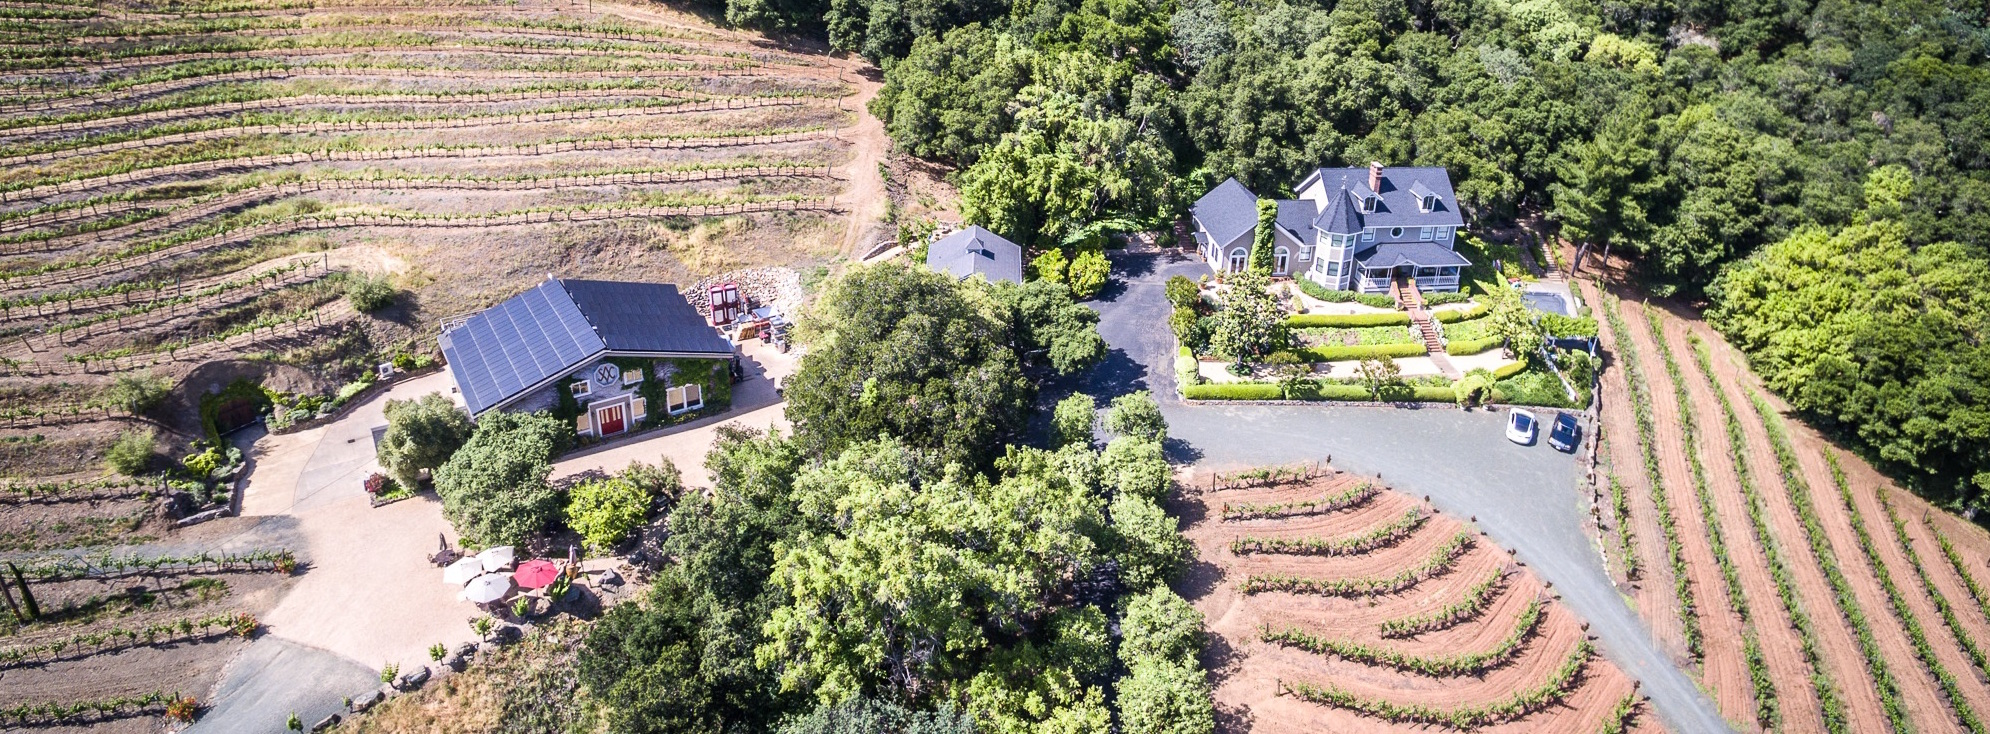 Amizetta Estate aerial view of house and tasting room